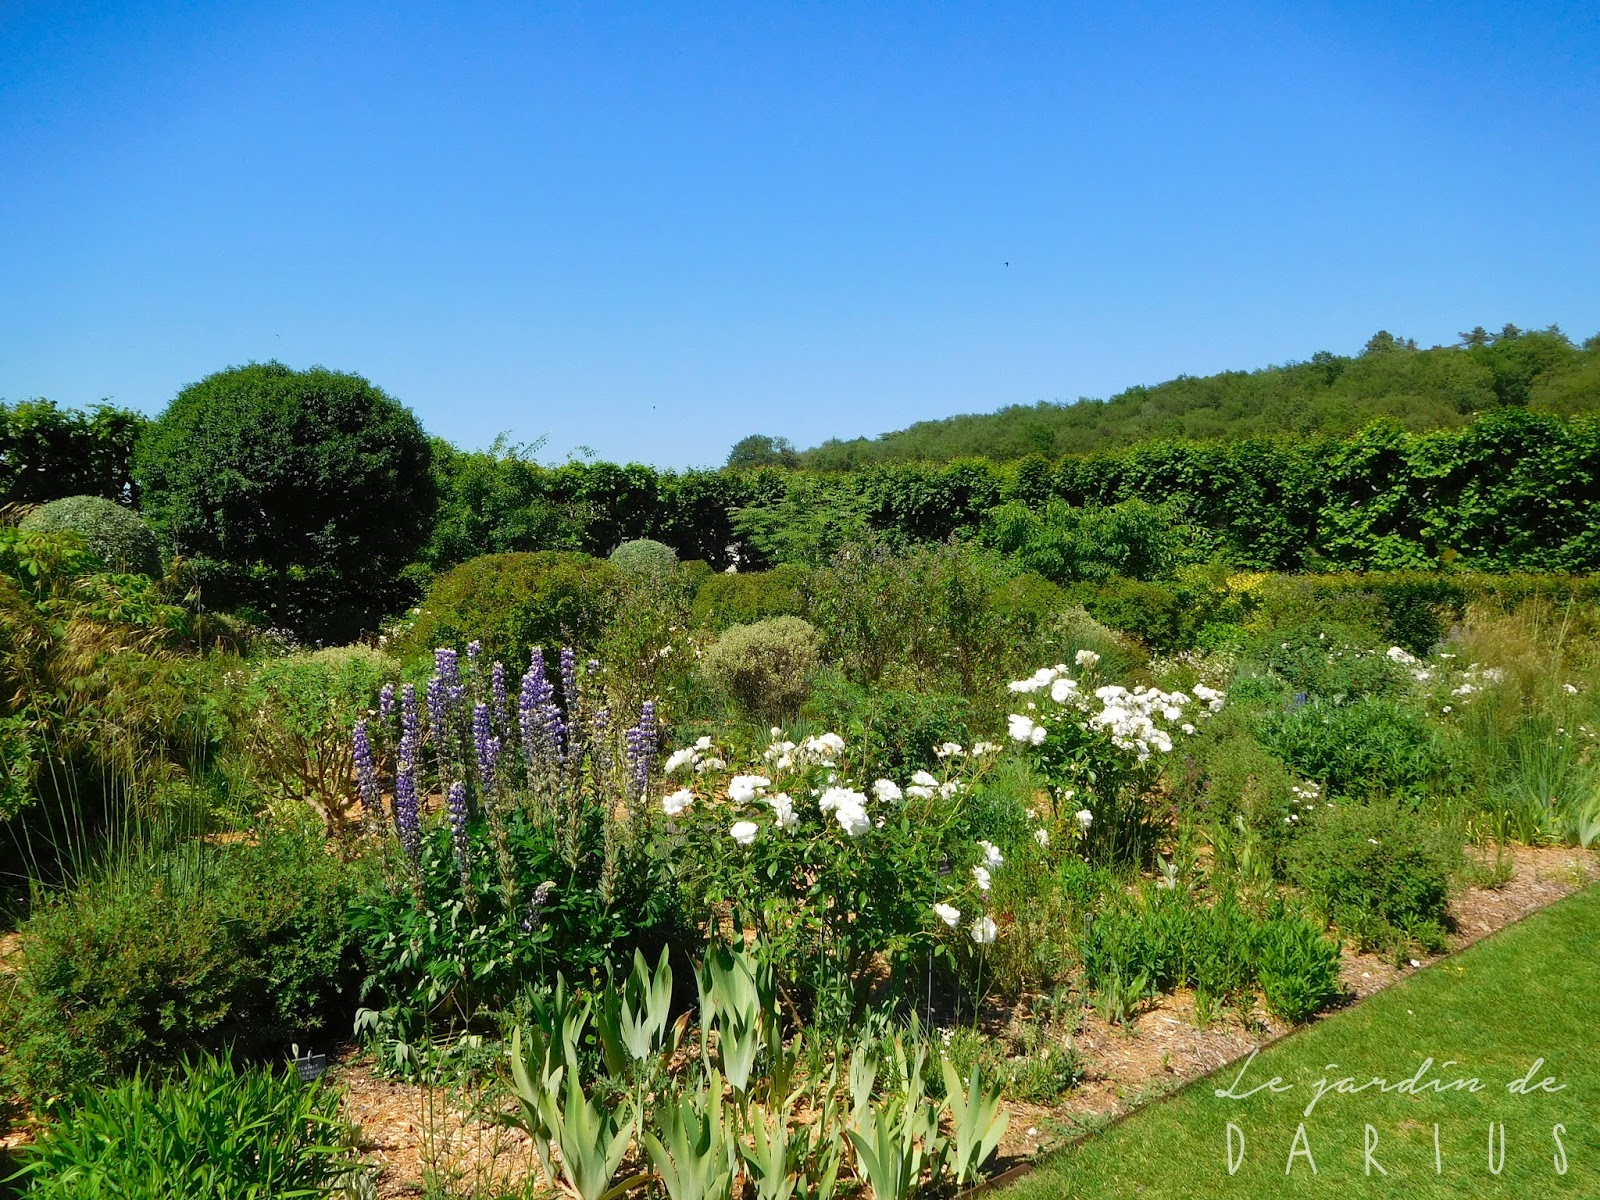 Le jardin de darius weekend en touraine 3 3 for Le jardin 2 0